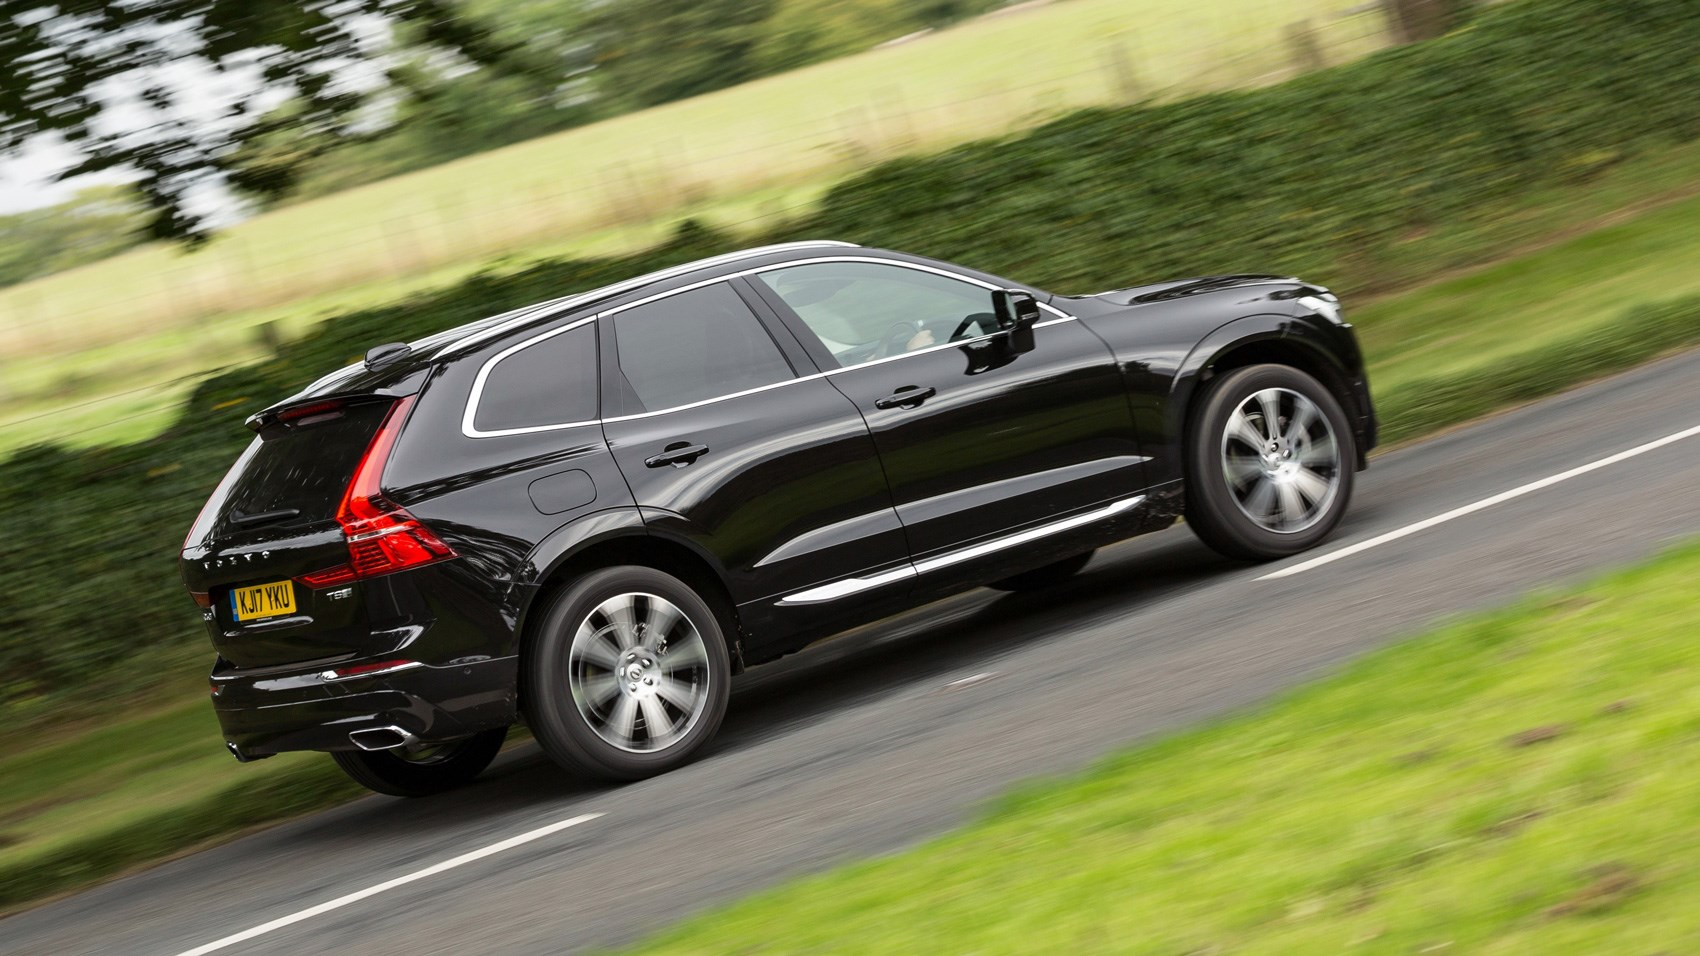 volvo xc60 t8 twin engine 2017 review car magazine. Black Bedroom Furniture Sets. Home Design Ideas